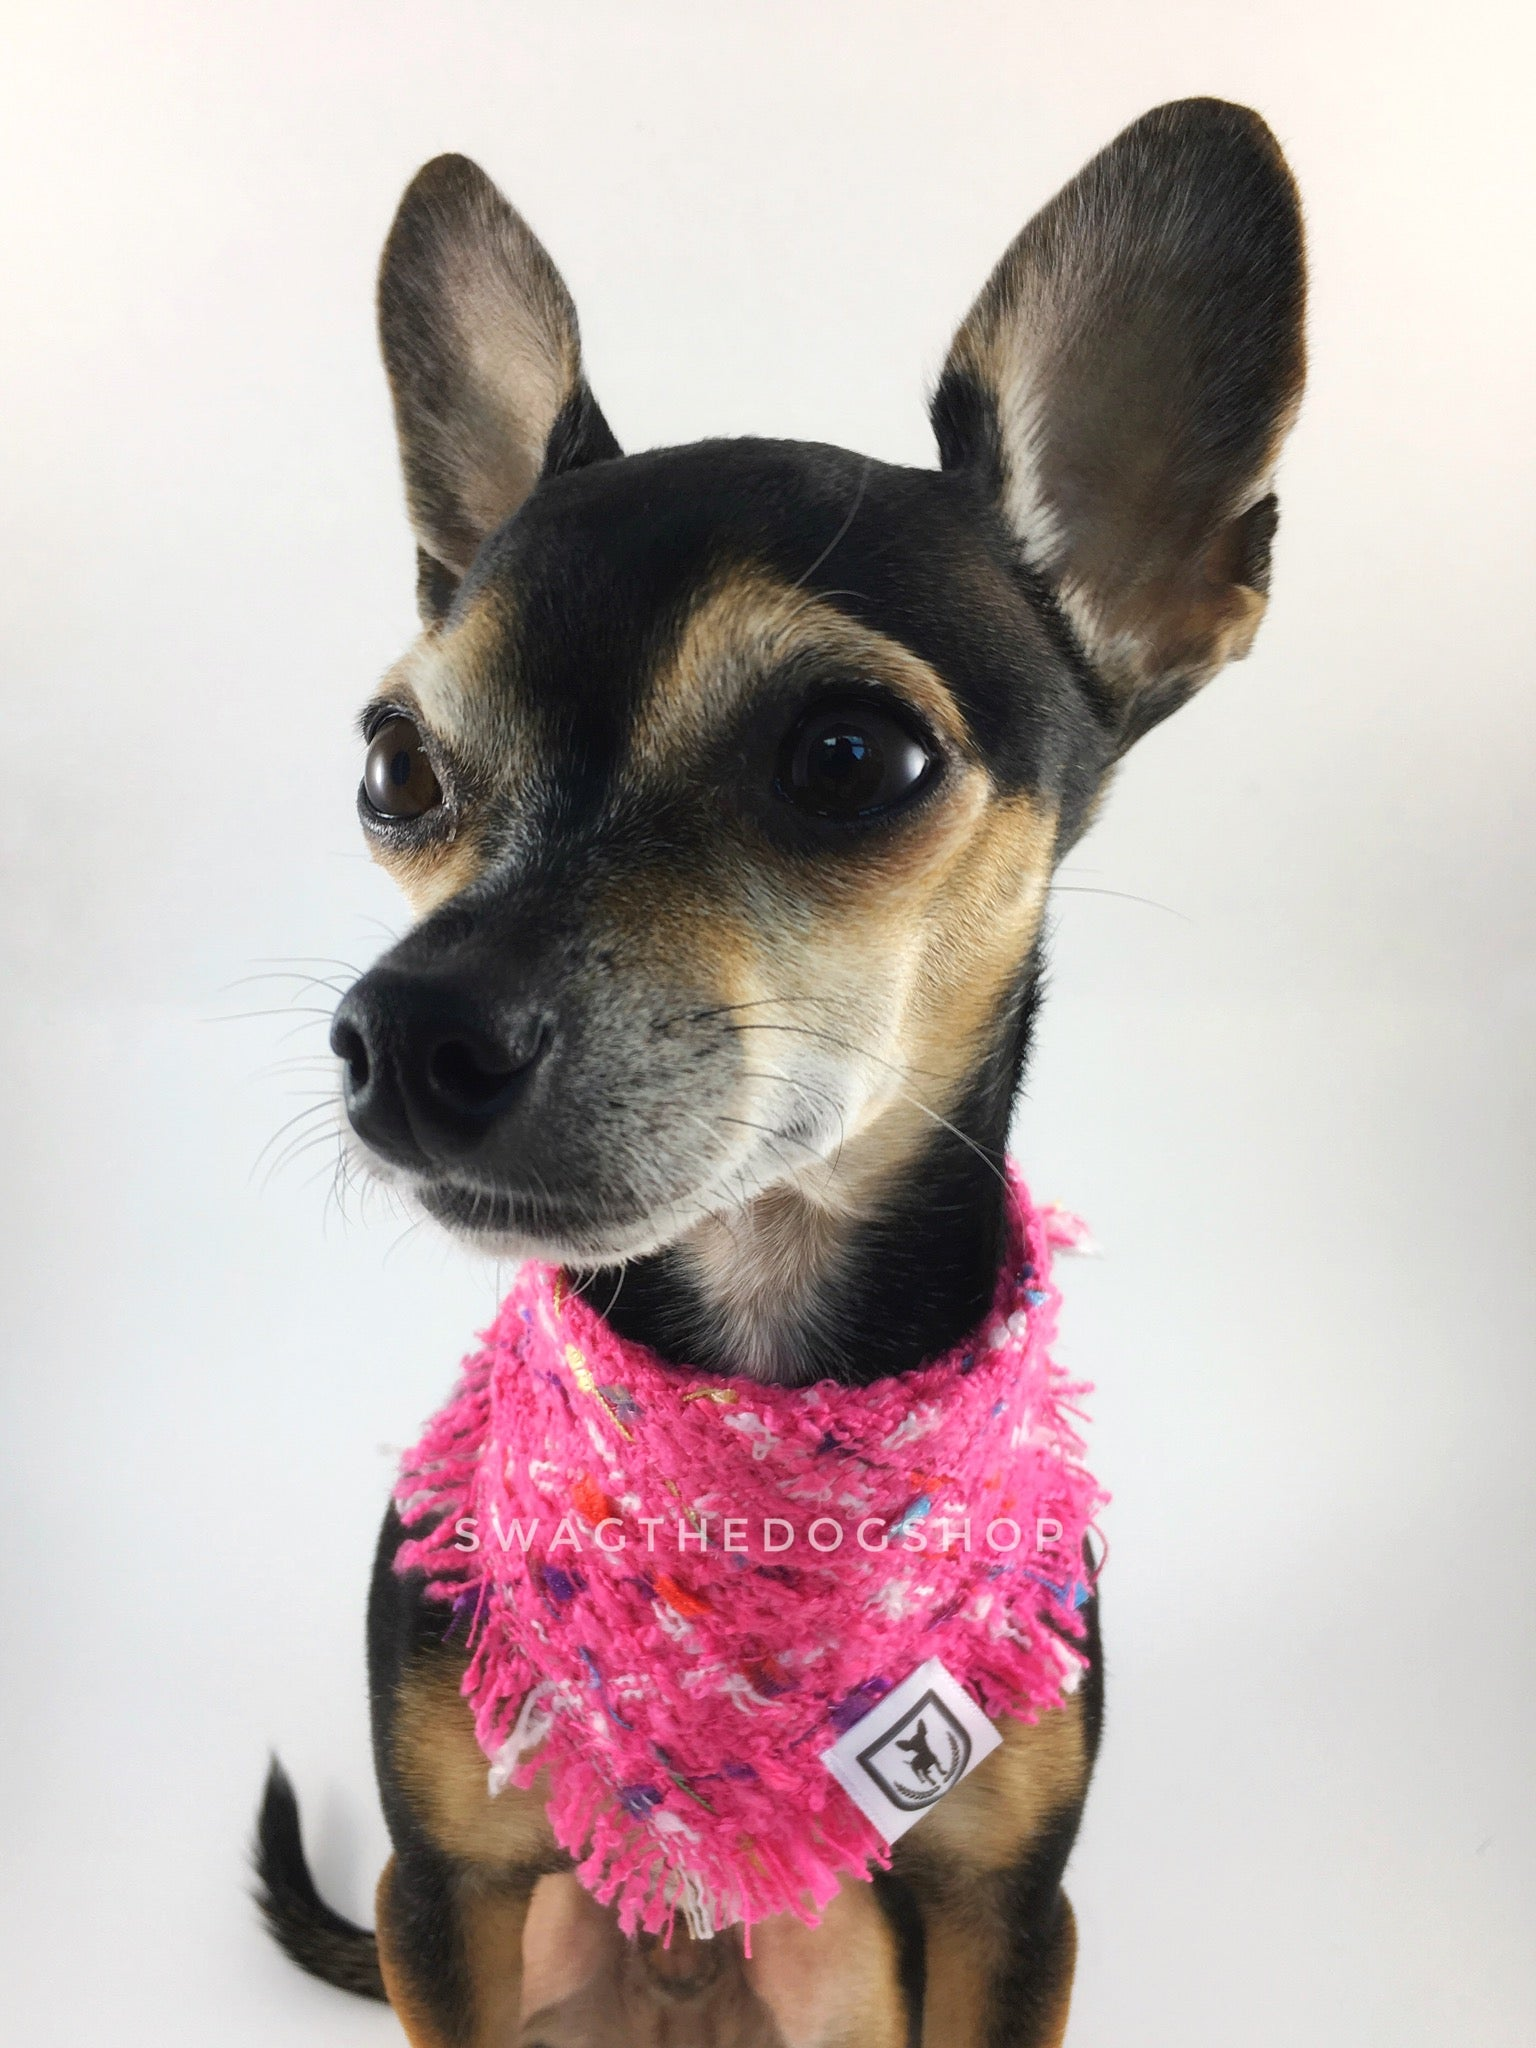 Hot Pink Tweed Swagdana with Frayed Edges - Bust of Cute Chihuahua Wearing Swagdana. Dog Bandana. Dog Scarf.